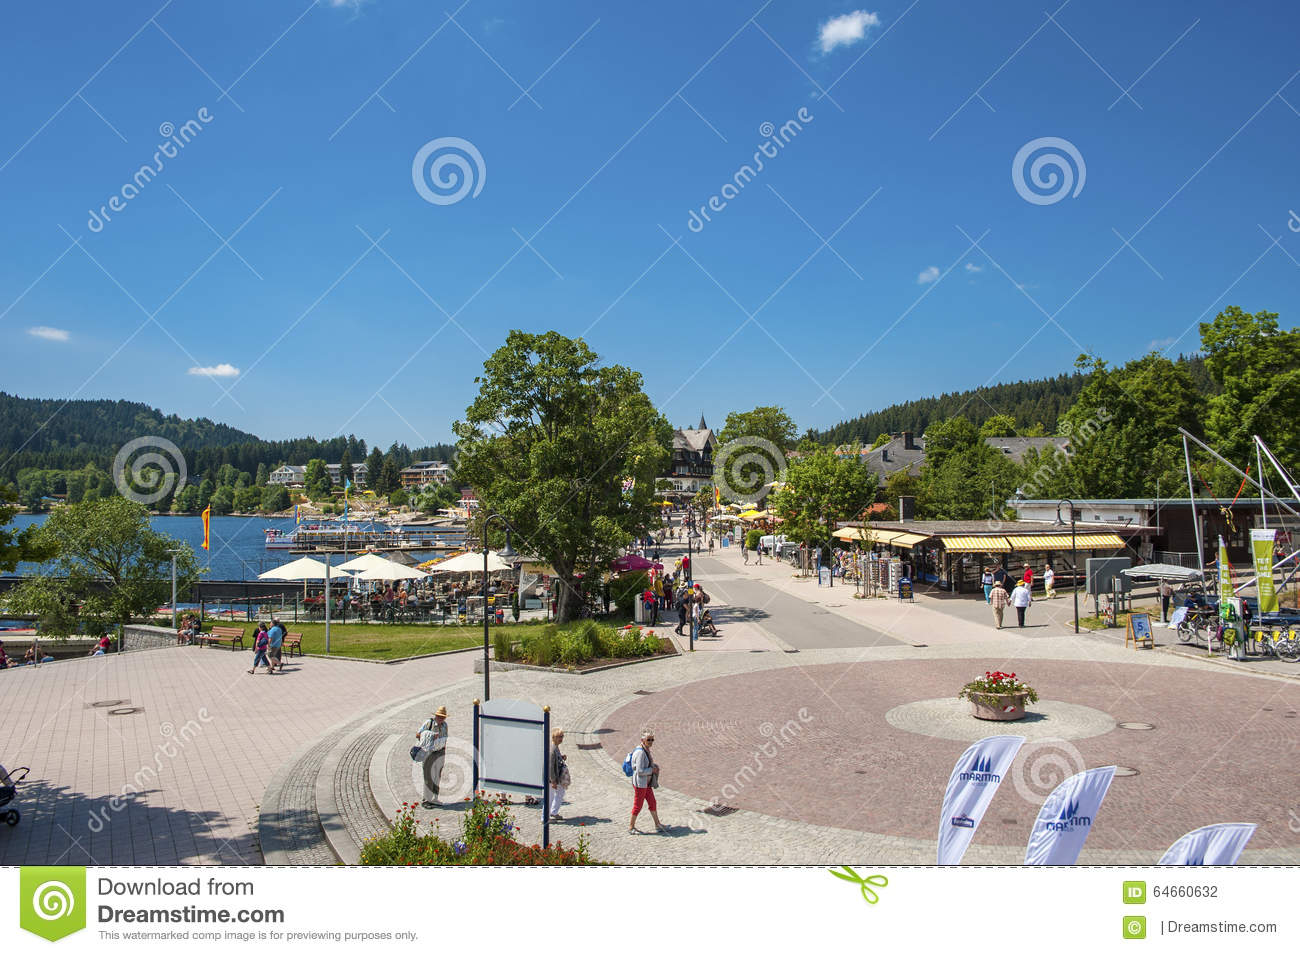 The Promenade In Titisee.